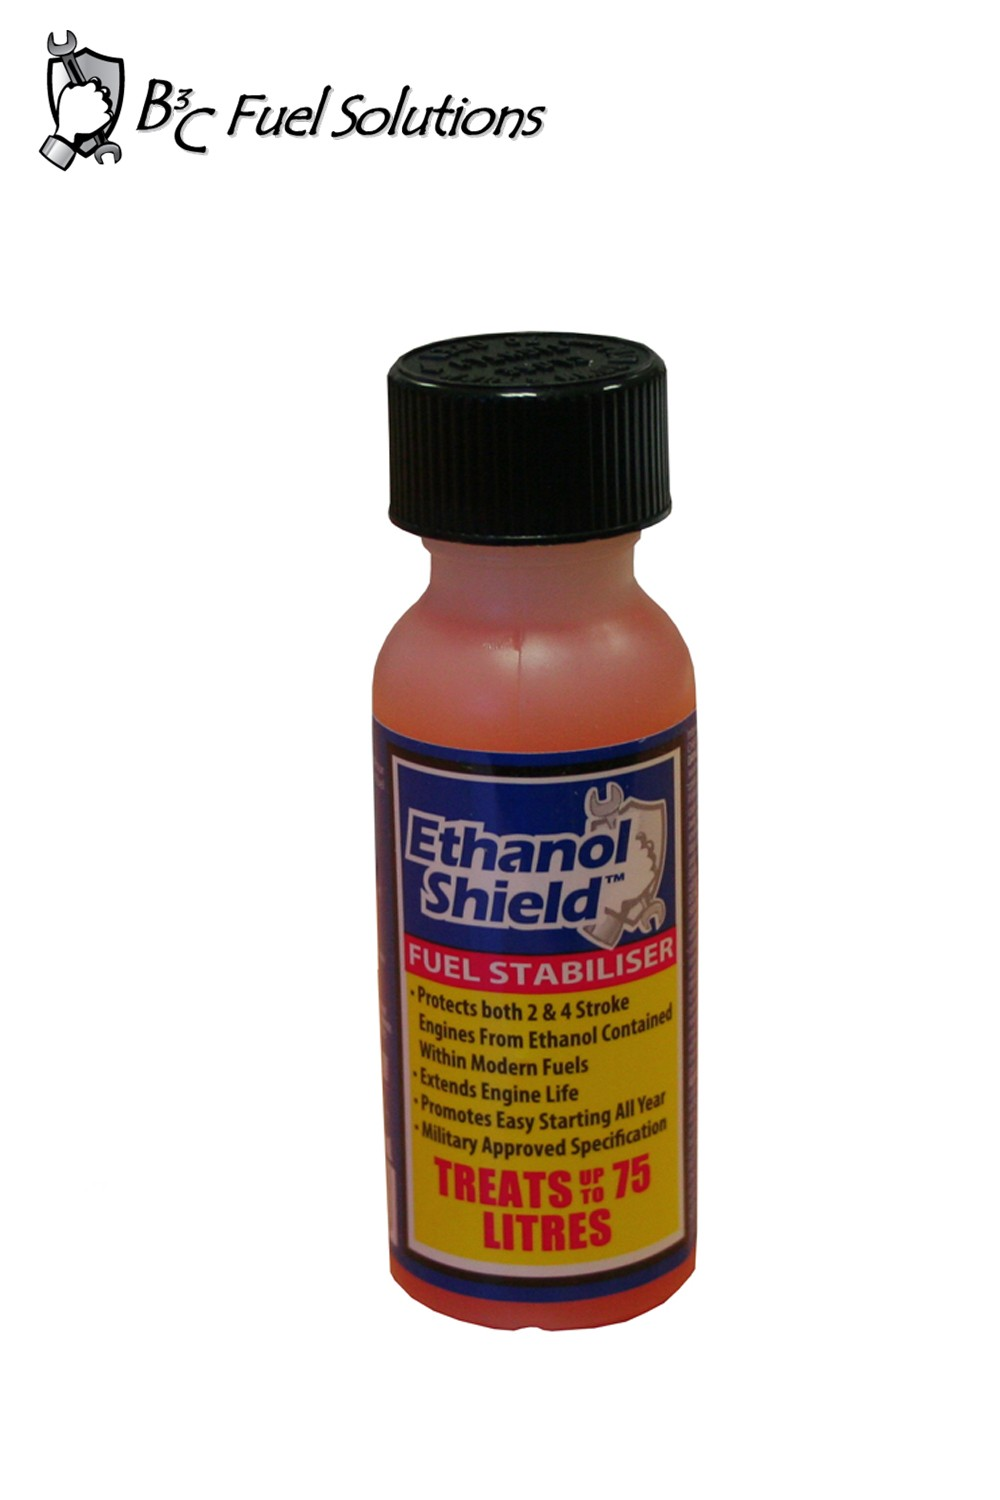 B3C Ethanol Shield Fuel Stabiliser - 59 ml